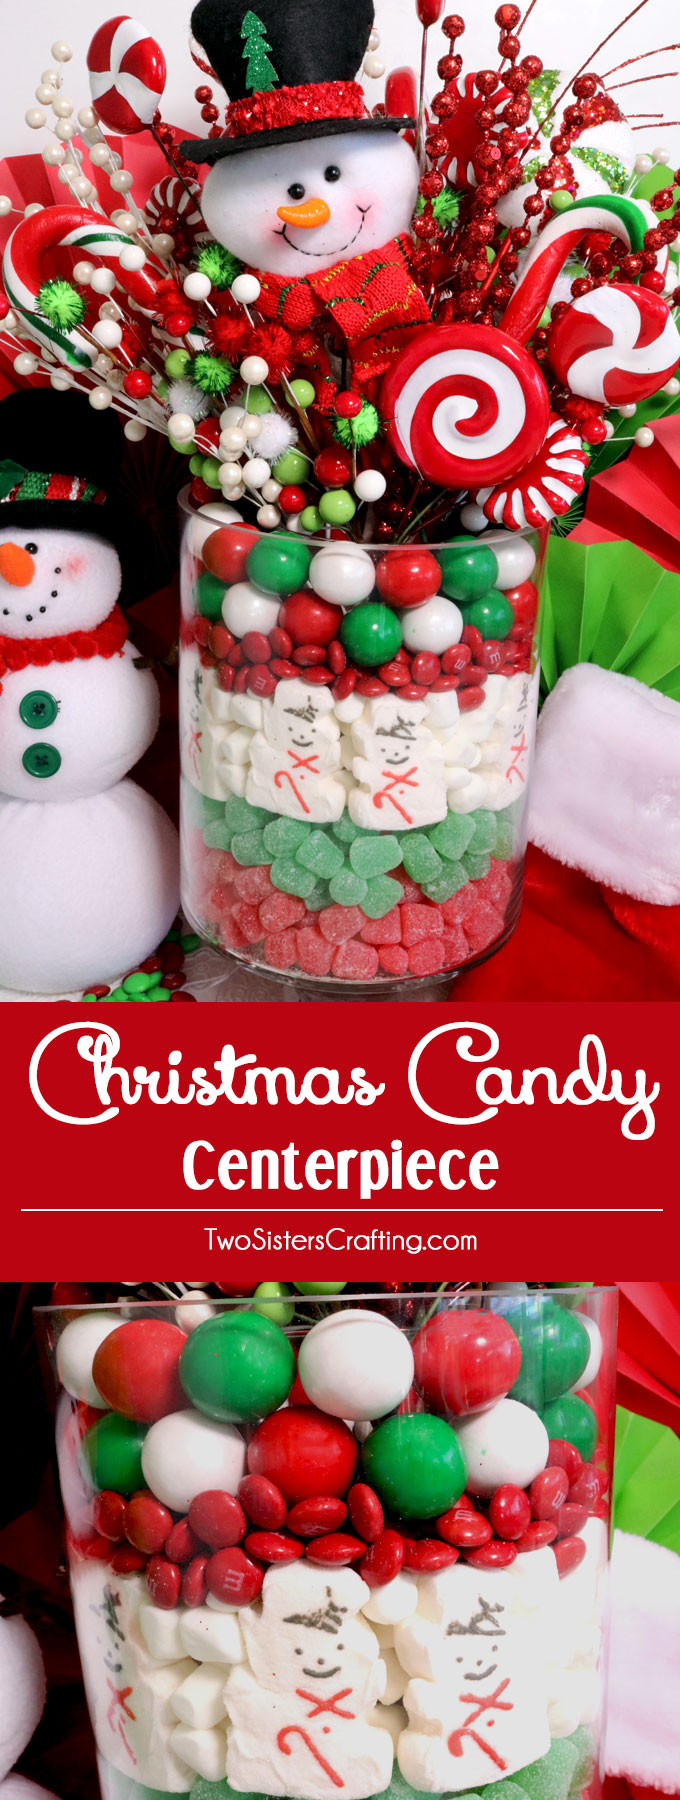 Christmas Candy Centerpieces  Christmas Candy Centerpiece Two Sisters